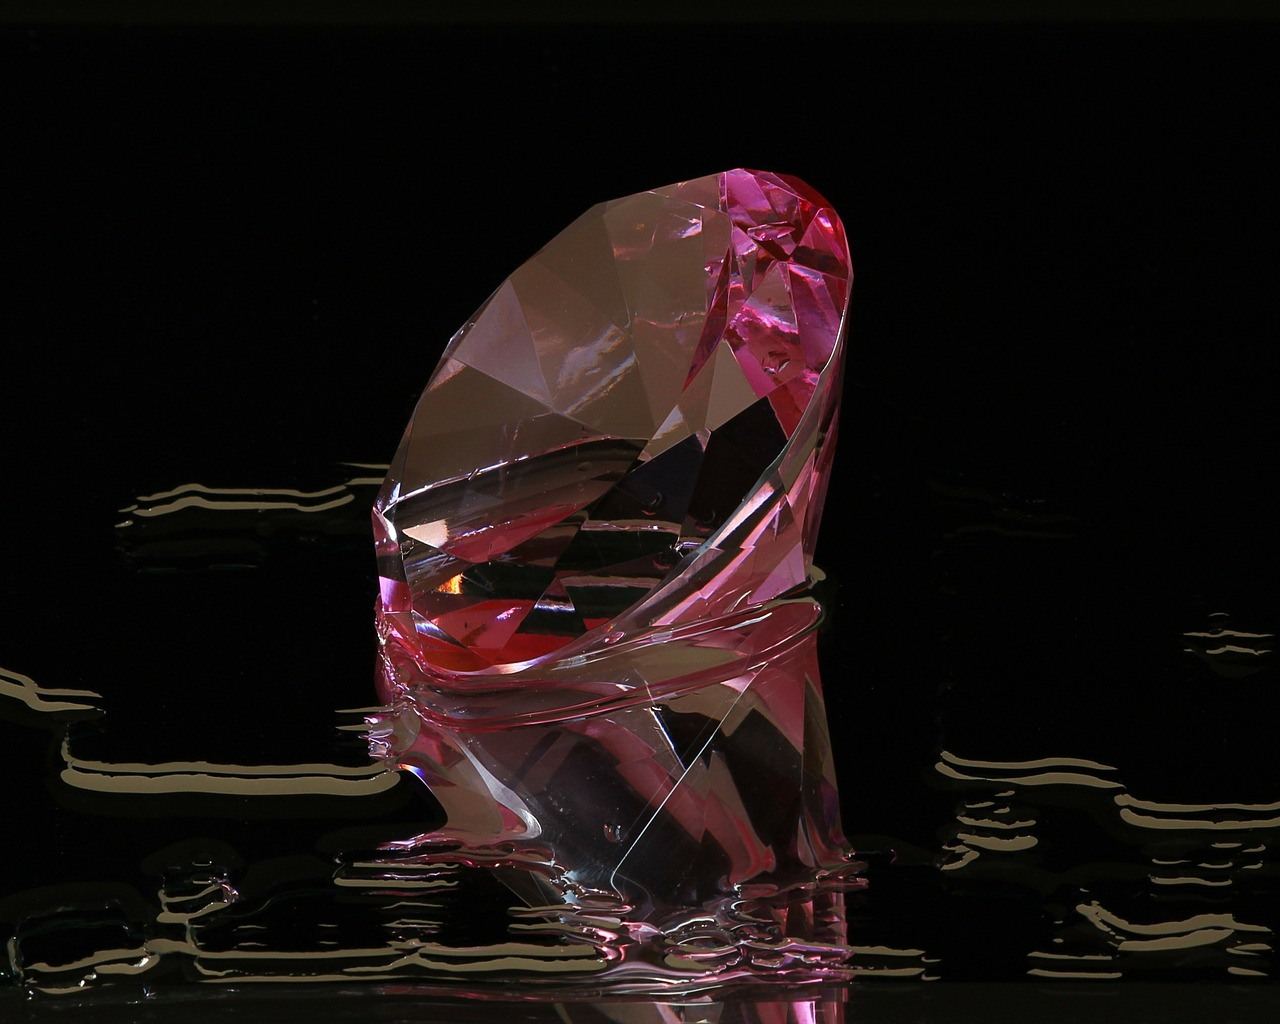 pink diamond round cut gem free photo